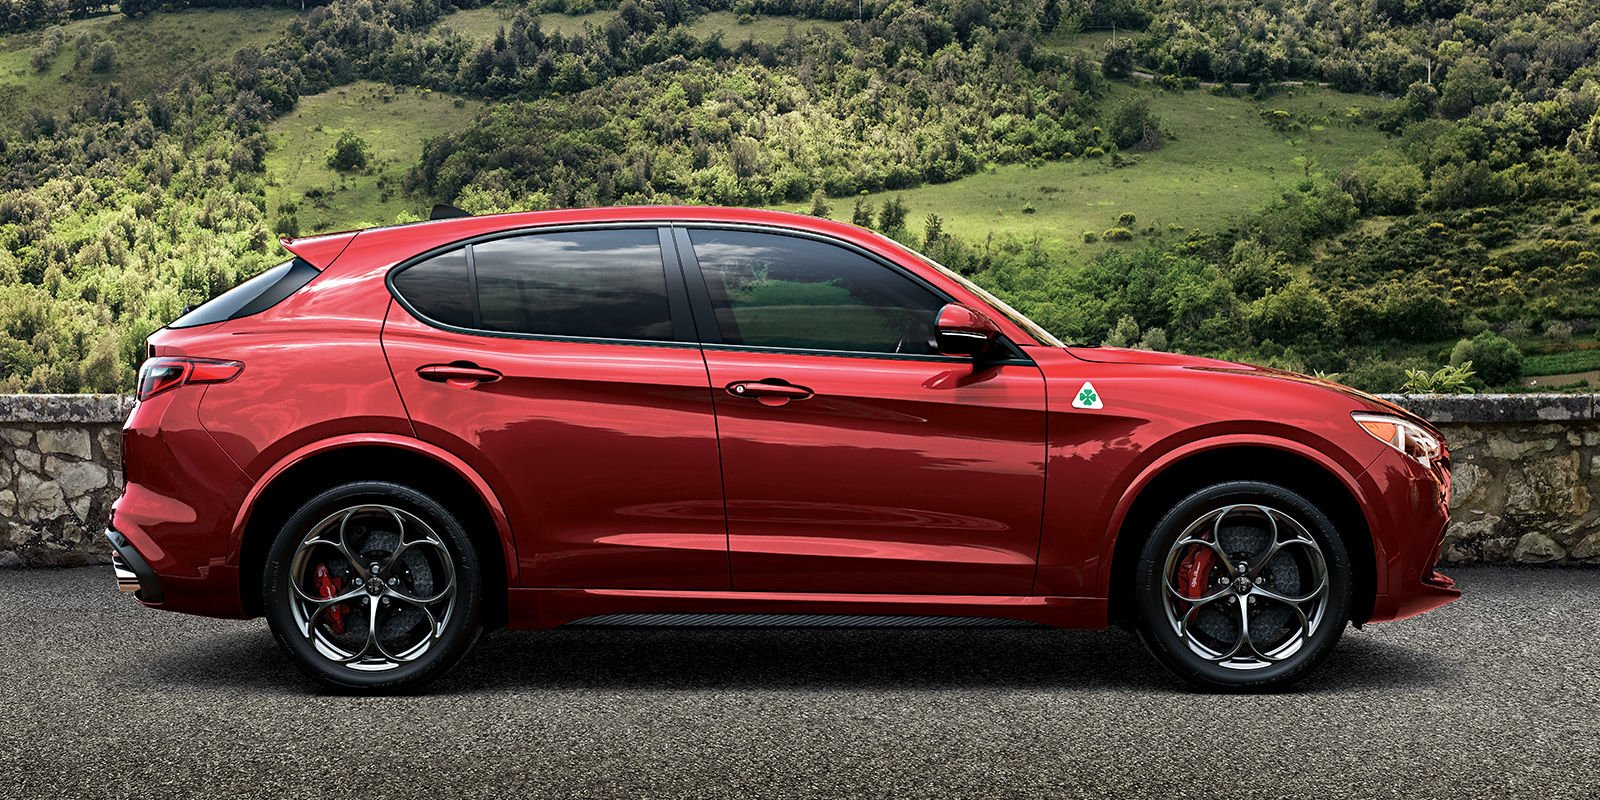 Alfa Romeo Stelvio Lease Deals Finance Prices Danvers Ma